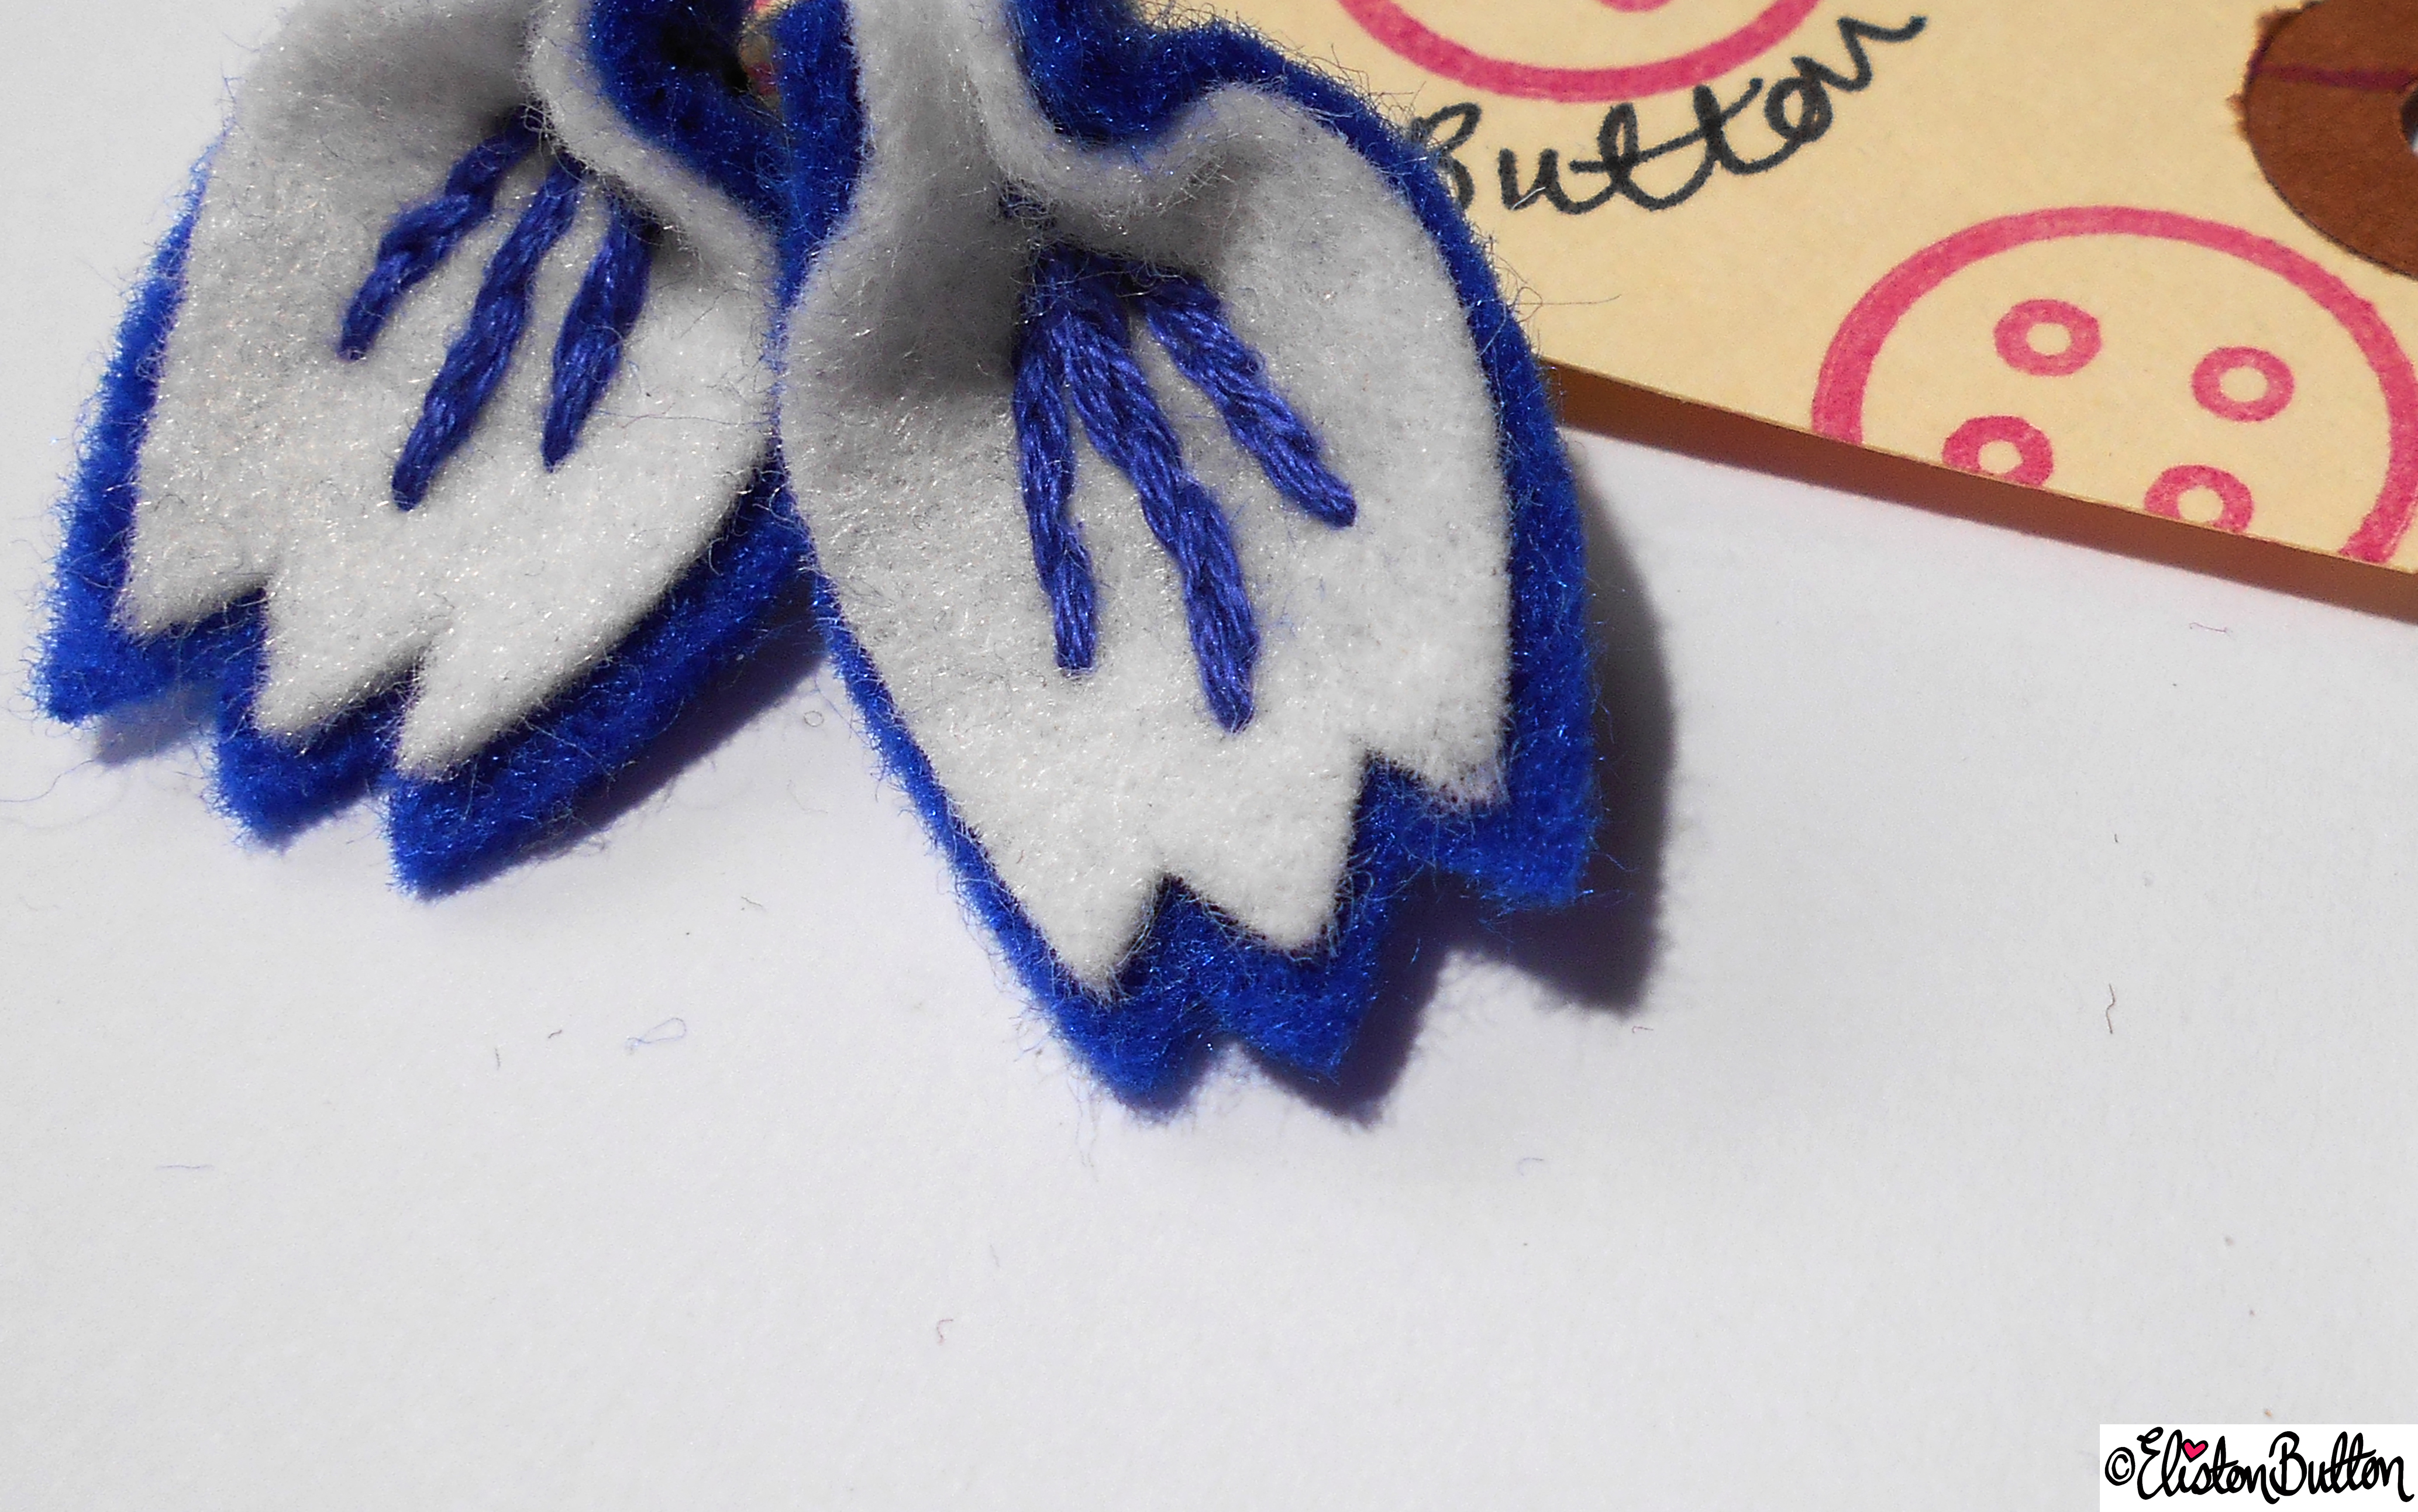 Blue and White Embroidered Felt Petal Earrings and Eliston Button Tag Close Up - Create 28 - No.2 - Embroidered Felt Petal Earrings at www.elistonbutton.com - Eliston Button - That Crafty Kid – Art, Design, Craft & Adventure.